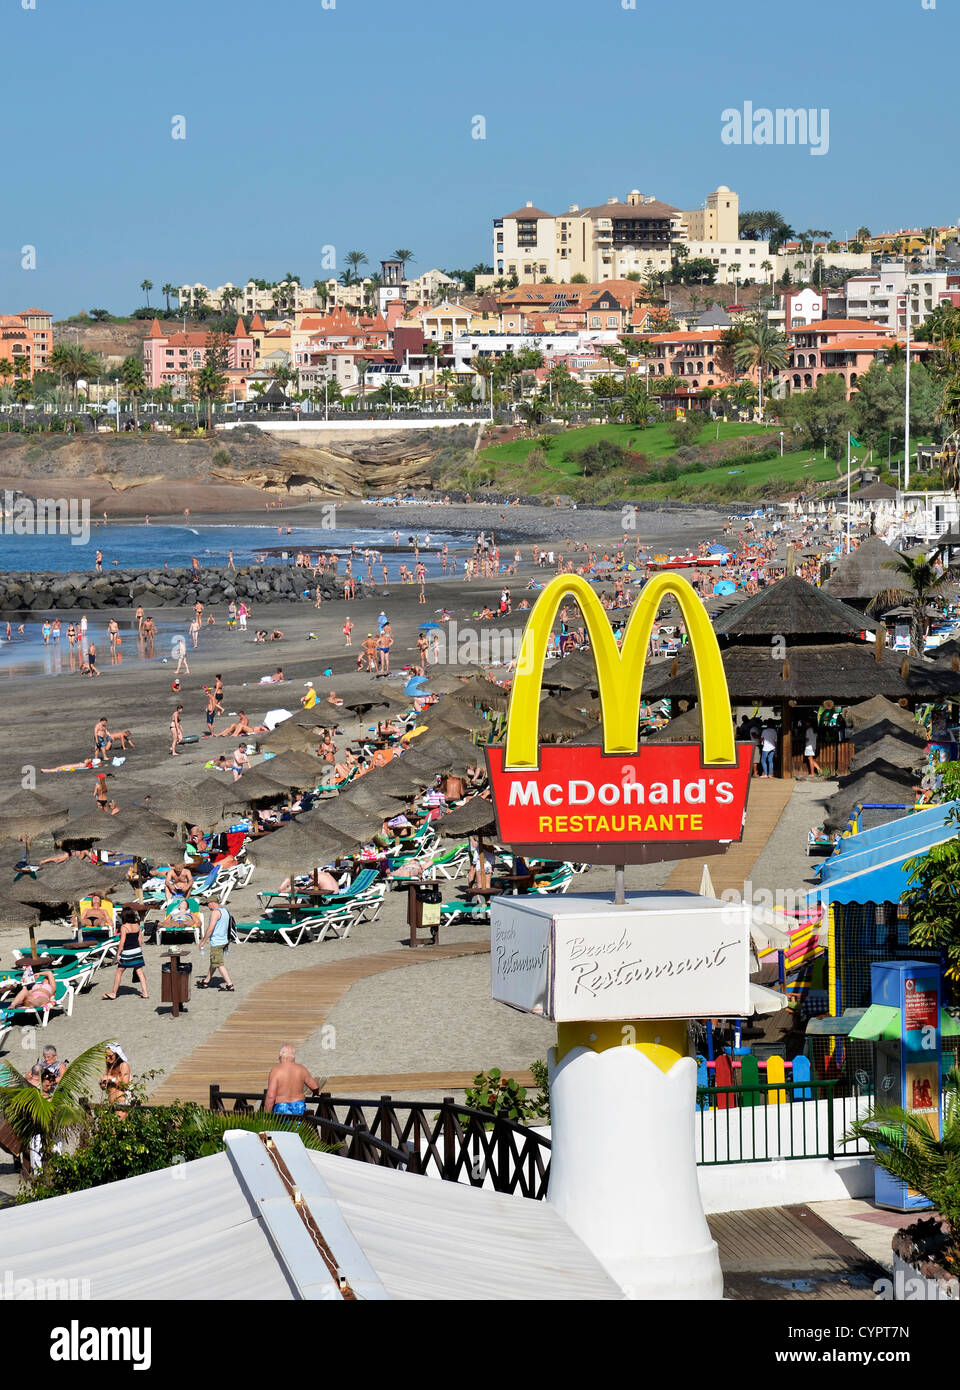 A Mcdonalds restaurant by the beach at Torviscas on the costa adeje in Tenerife, Canary Islands. - Stock Image